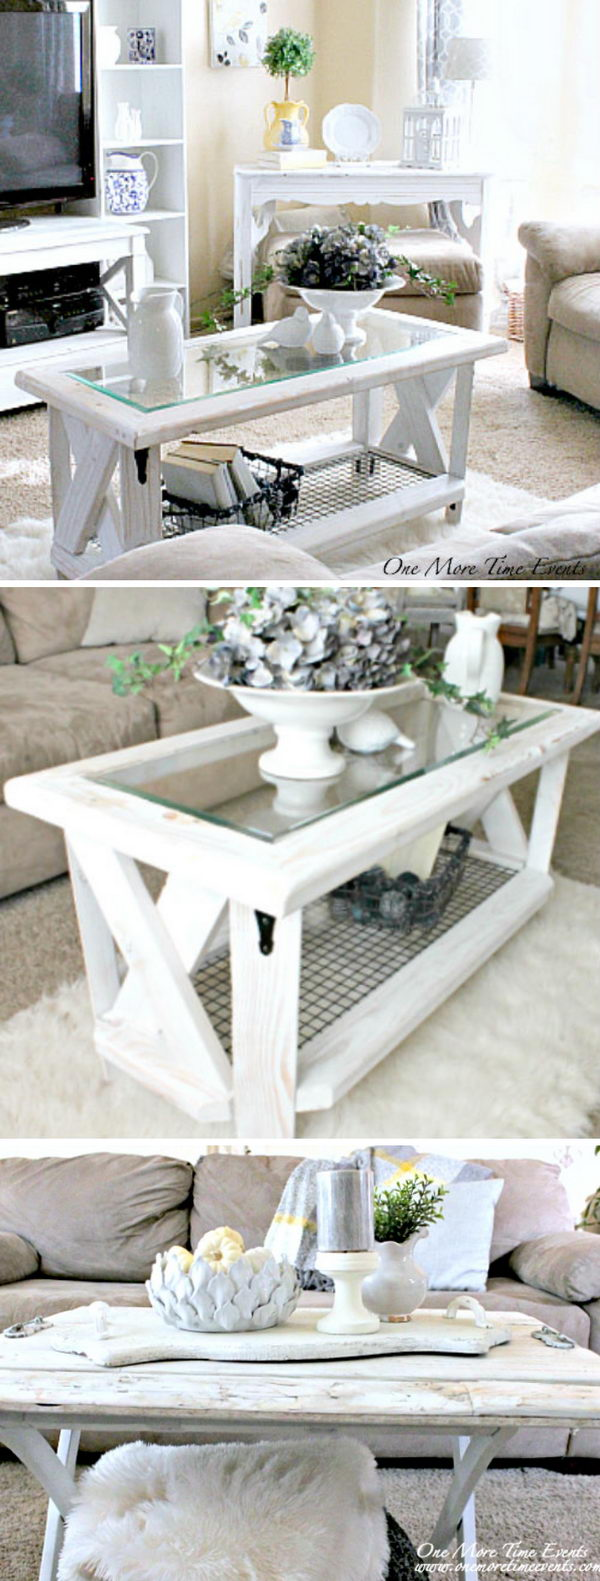 Farmhouse Coffee Table.